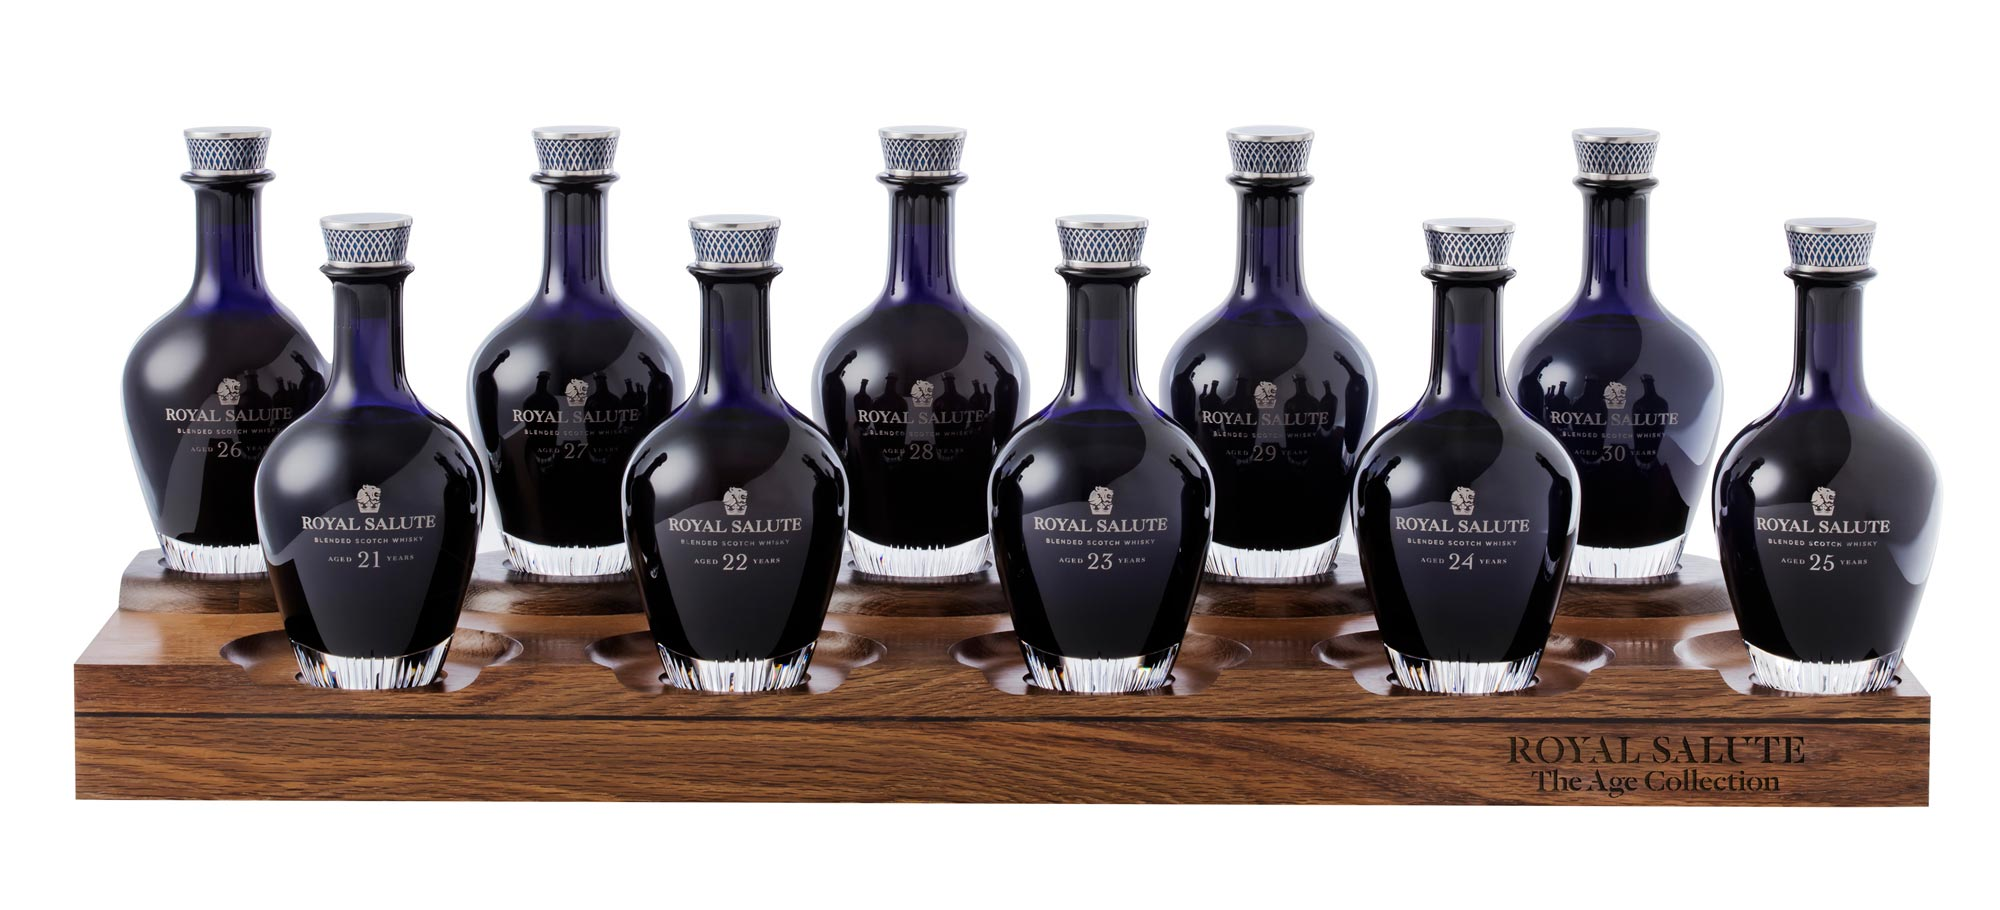 Royal Salute Whisky Releases Highly-Exclusive Age Collection 6